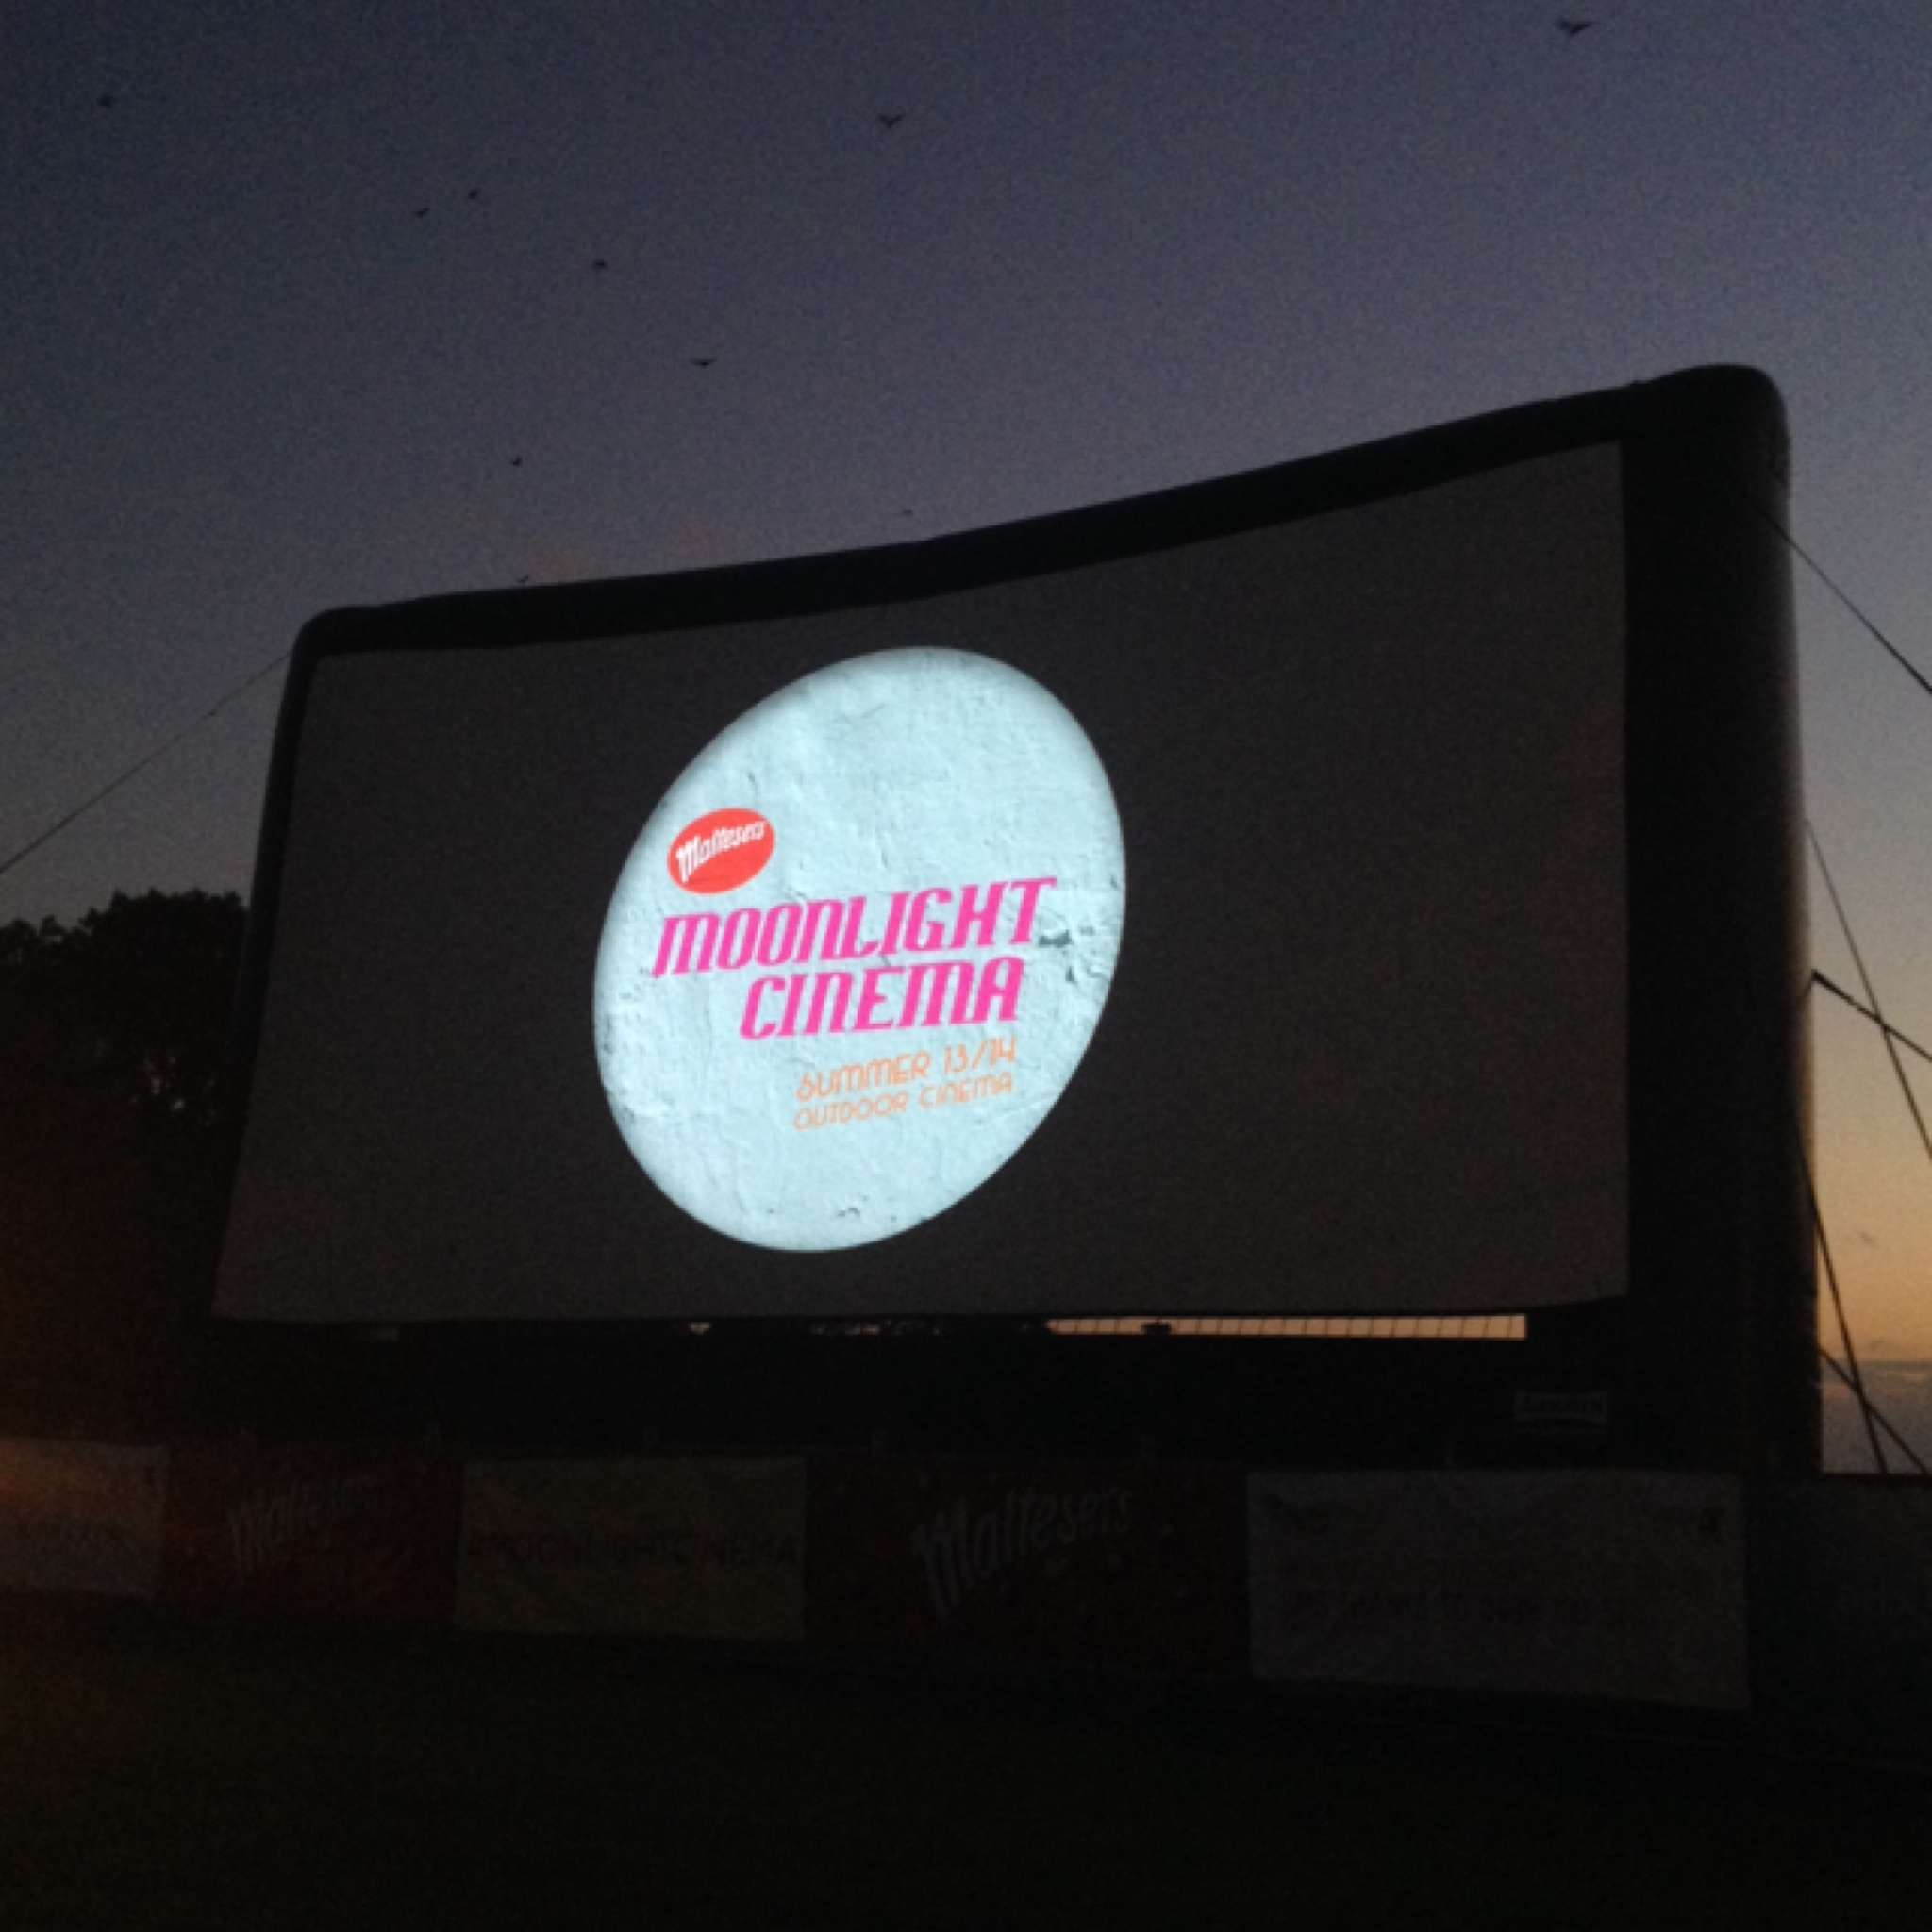 Opel Moonlight Cinema